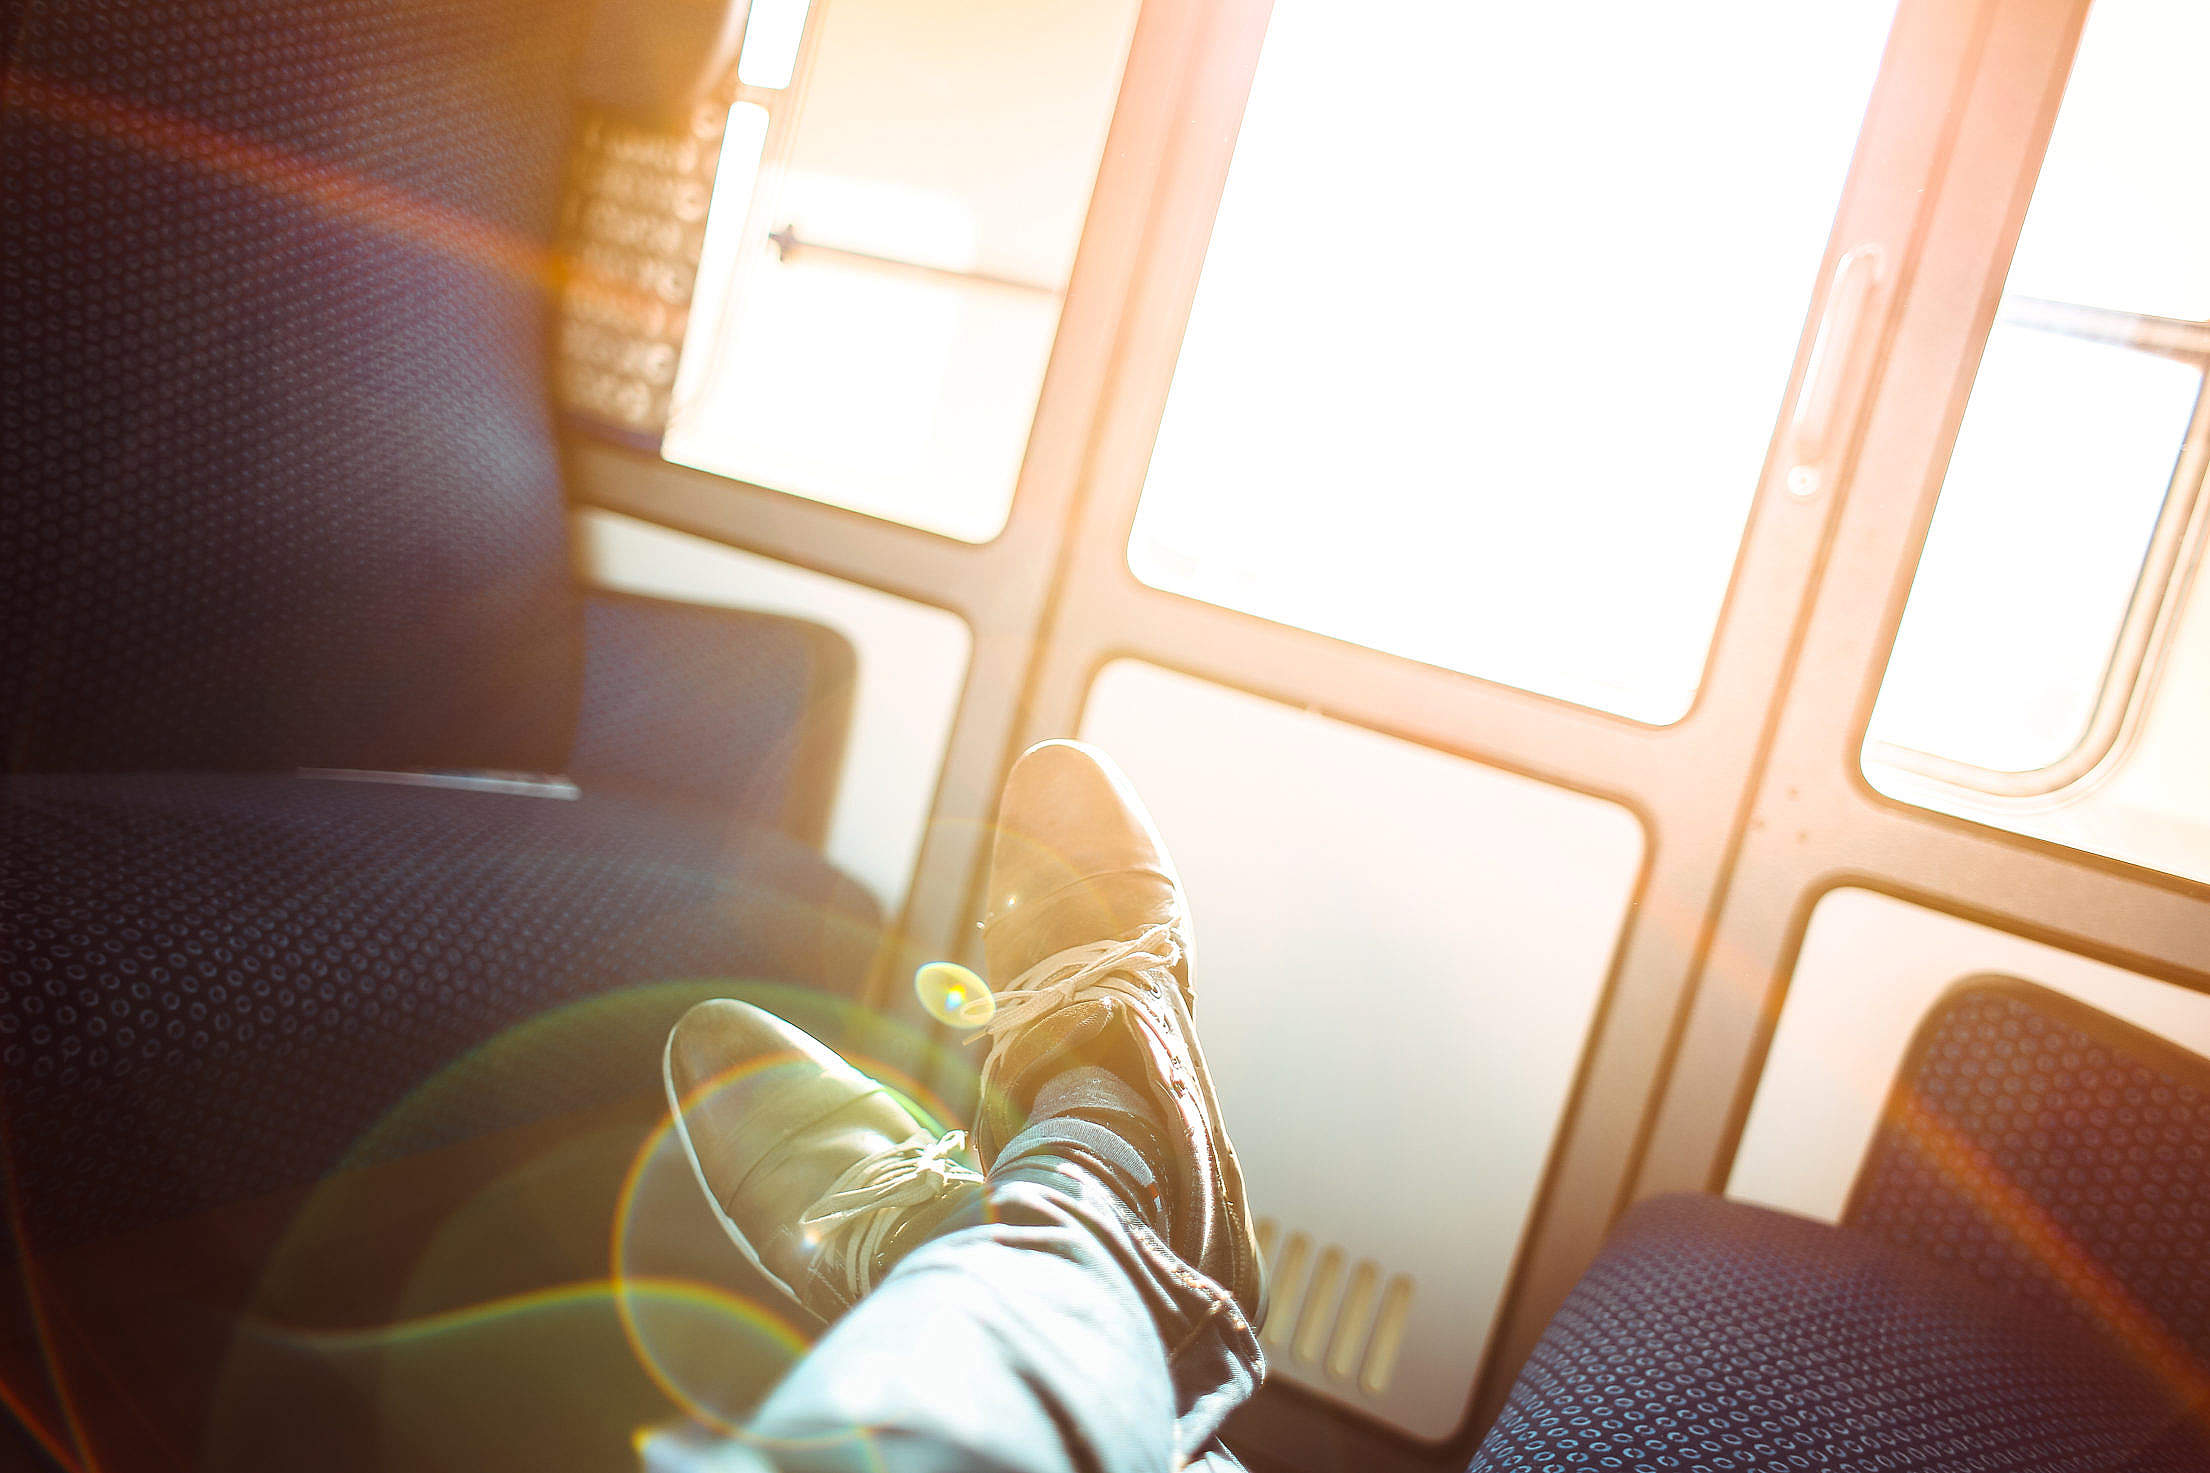 Sunny Traveling by Train Free Stock Photo